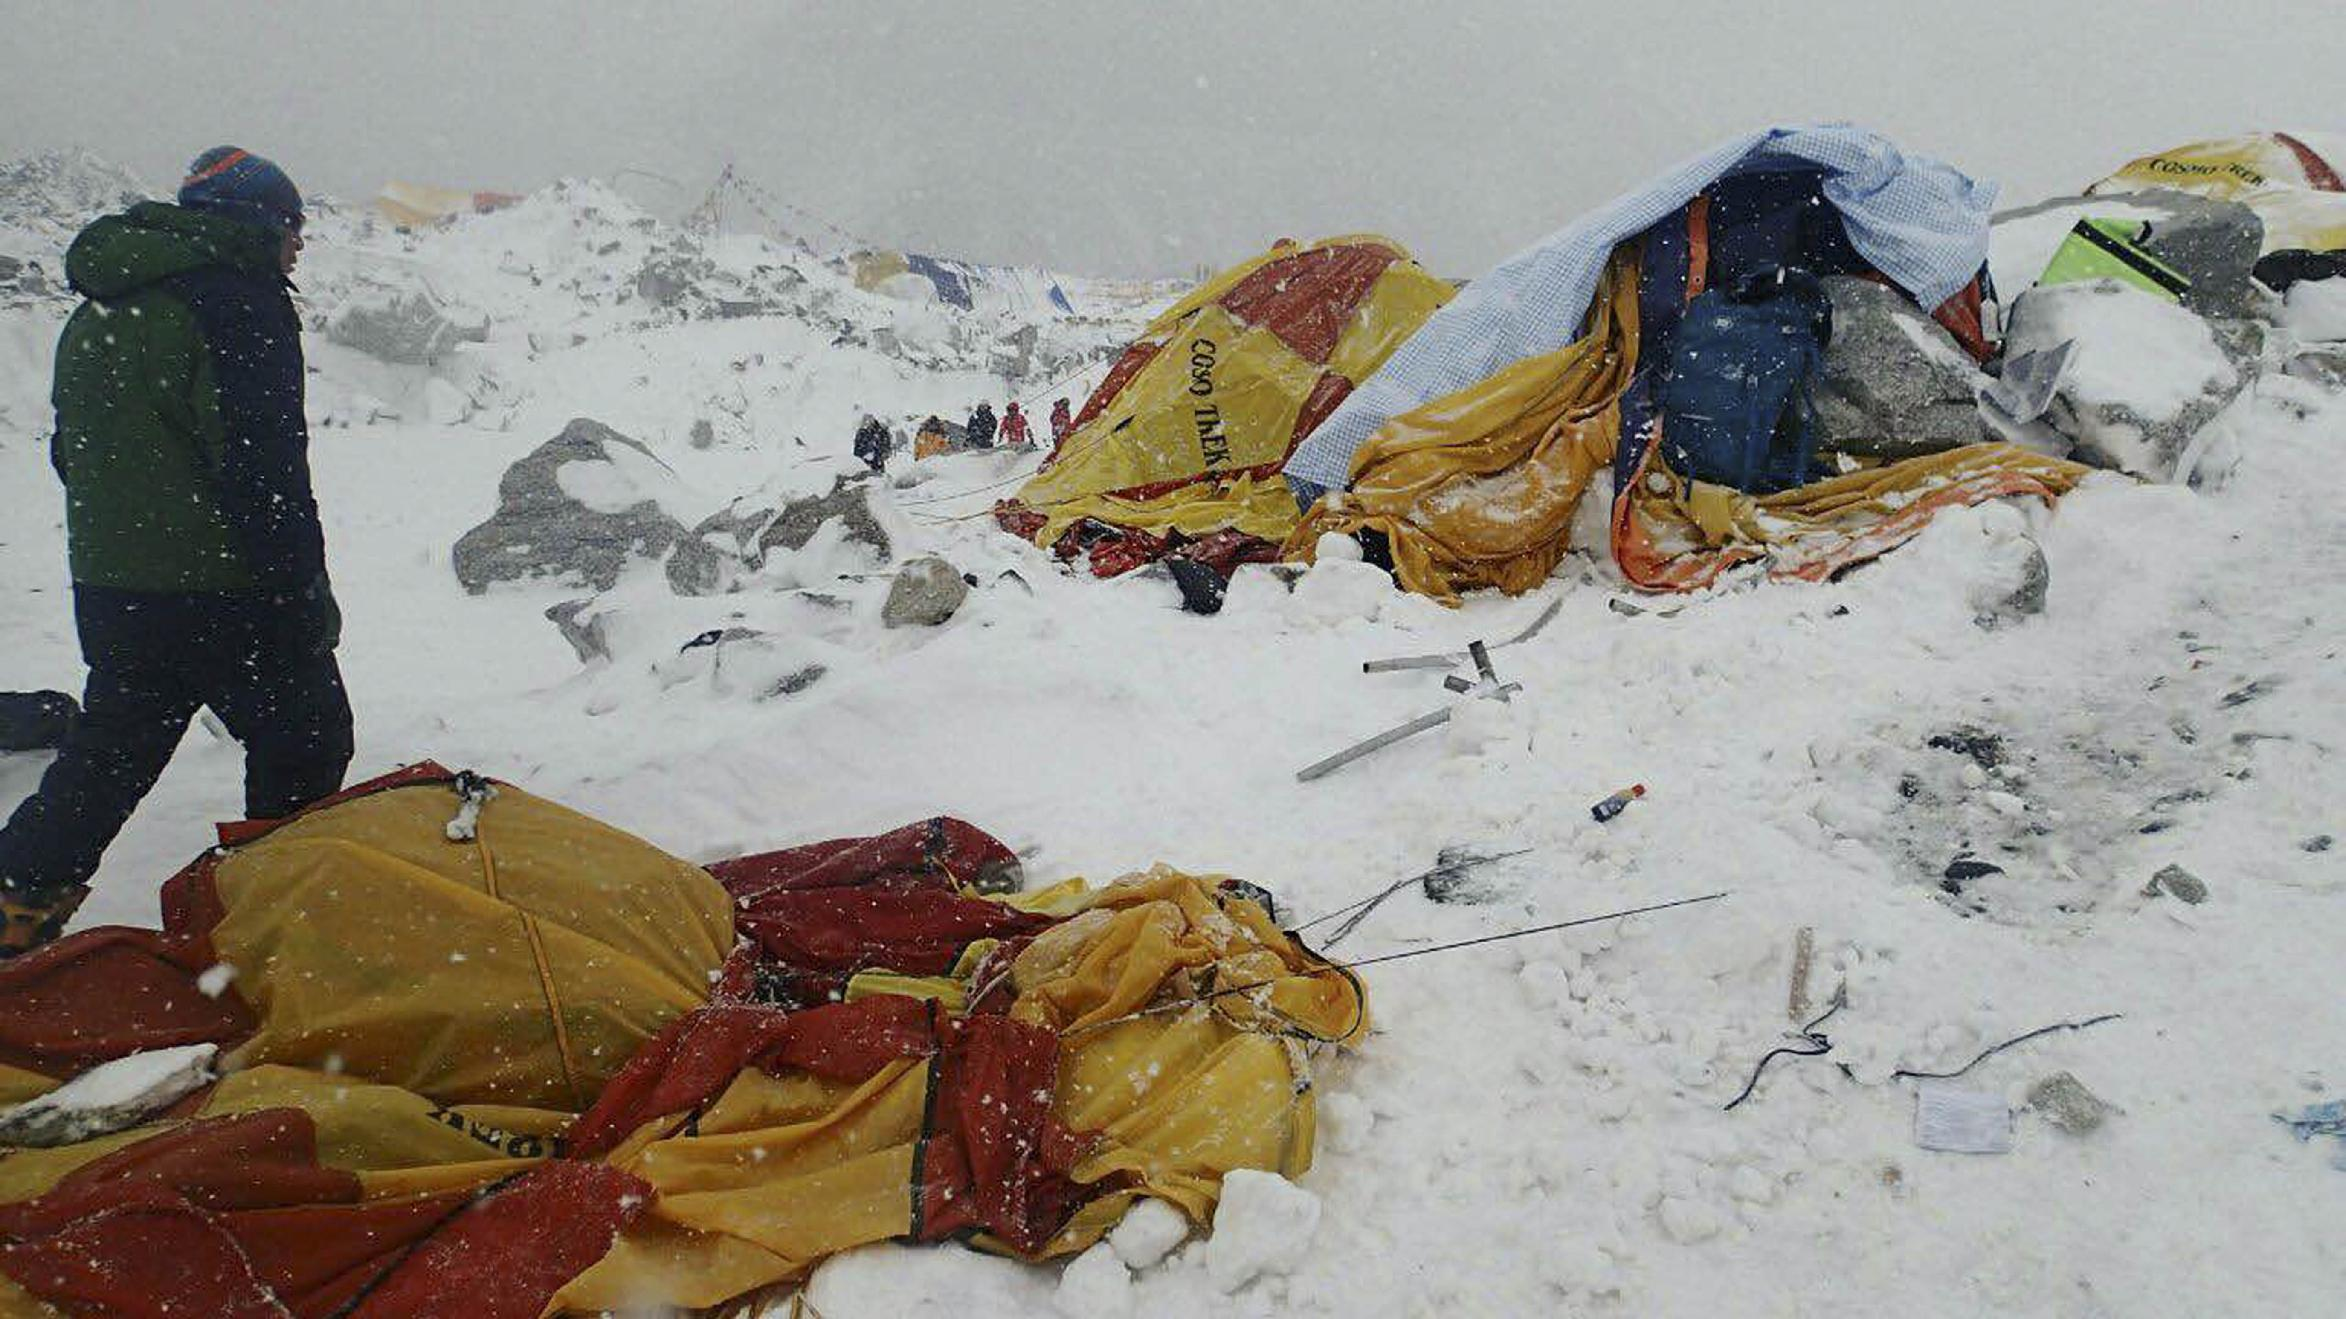 10 dead as quake and avalanche sweep Mount Everest region